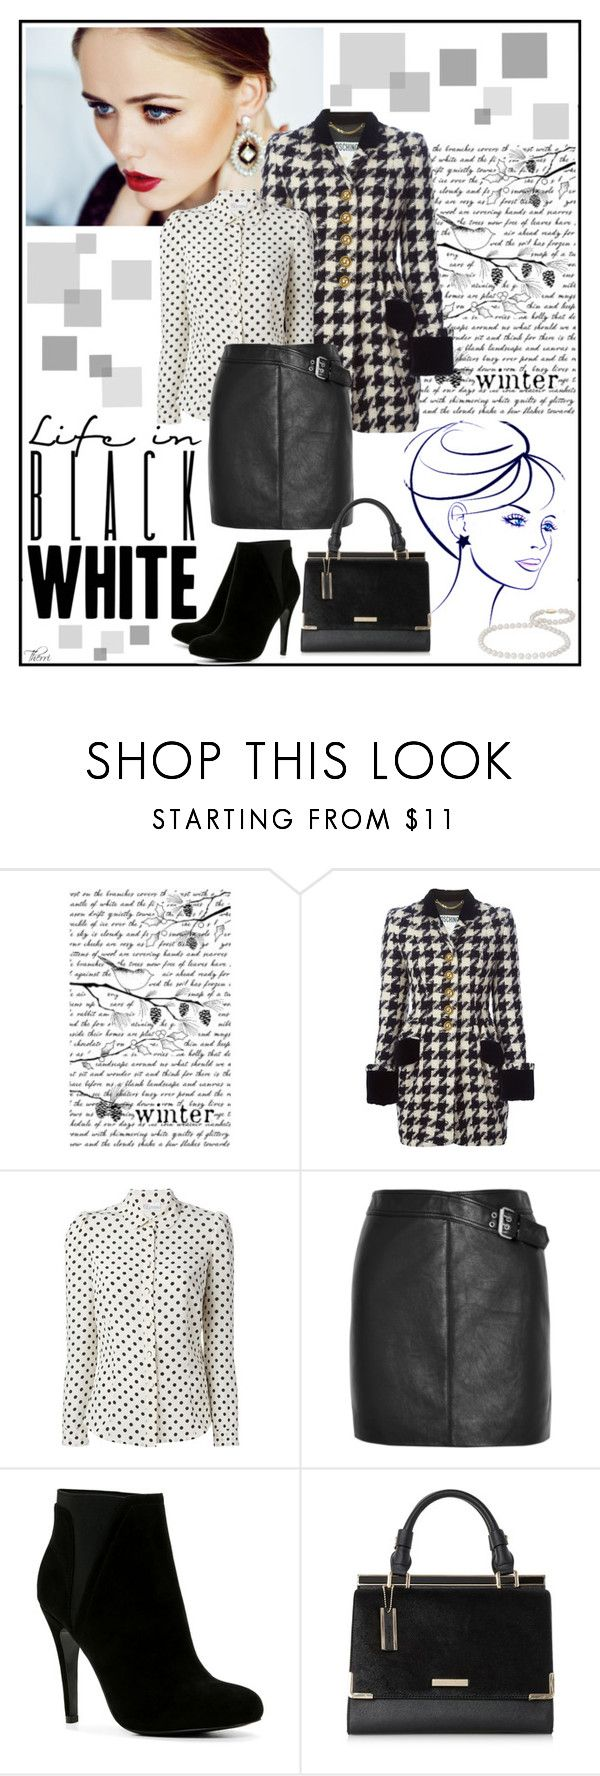 """classic in b&w"" by paris-therri ❤ liked on Polyvore featuring Moschino, RED Valentino, Yves Saint Laurent, ALDO and Blue Nile"